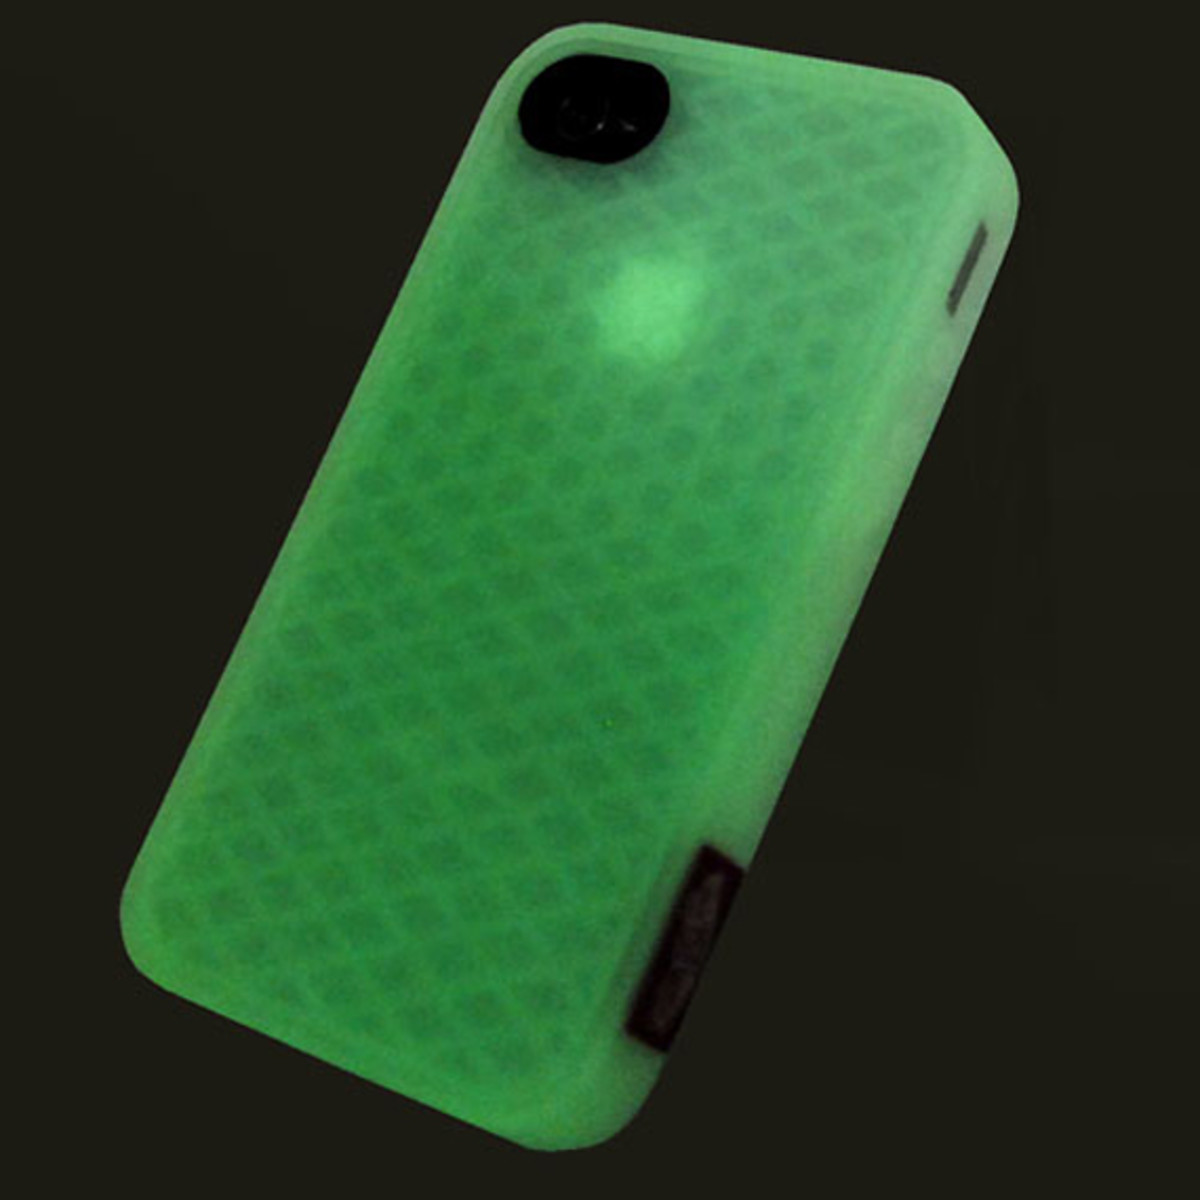 vans-rubber-waffle-sole-case-for-apple-iphone-4-glow-in-the-dark-edition-01